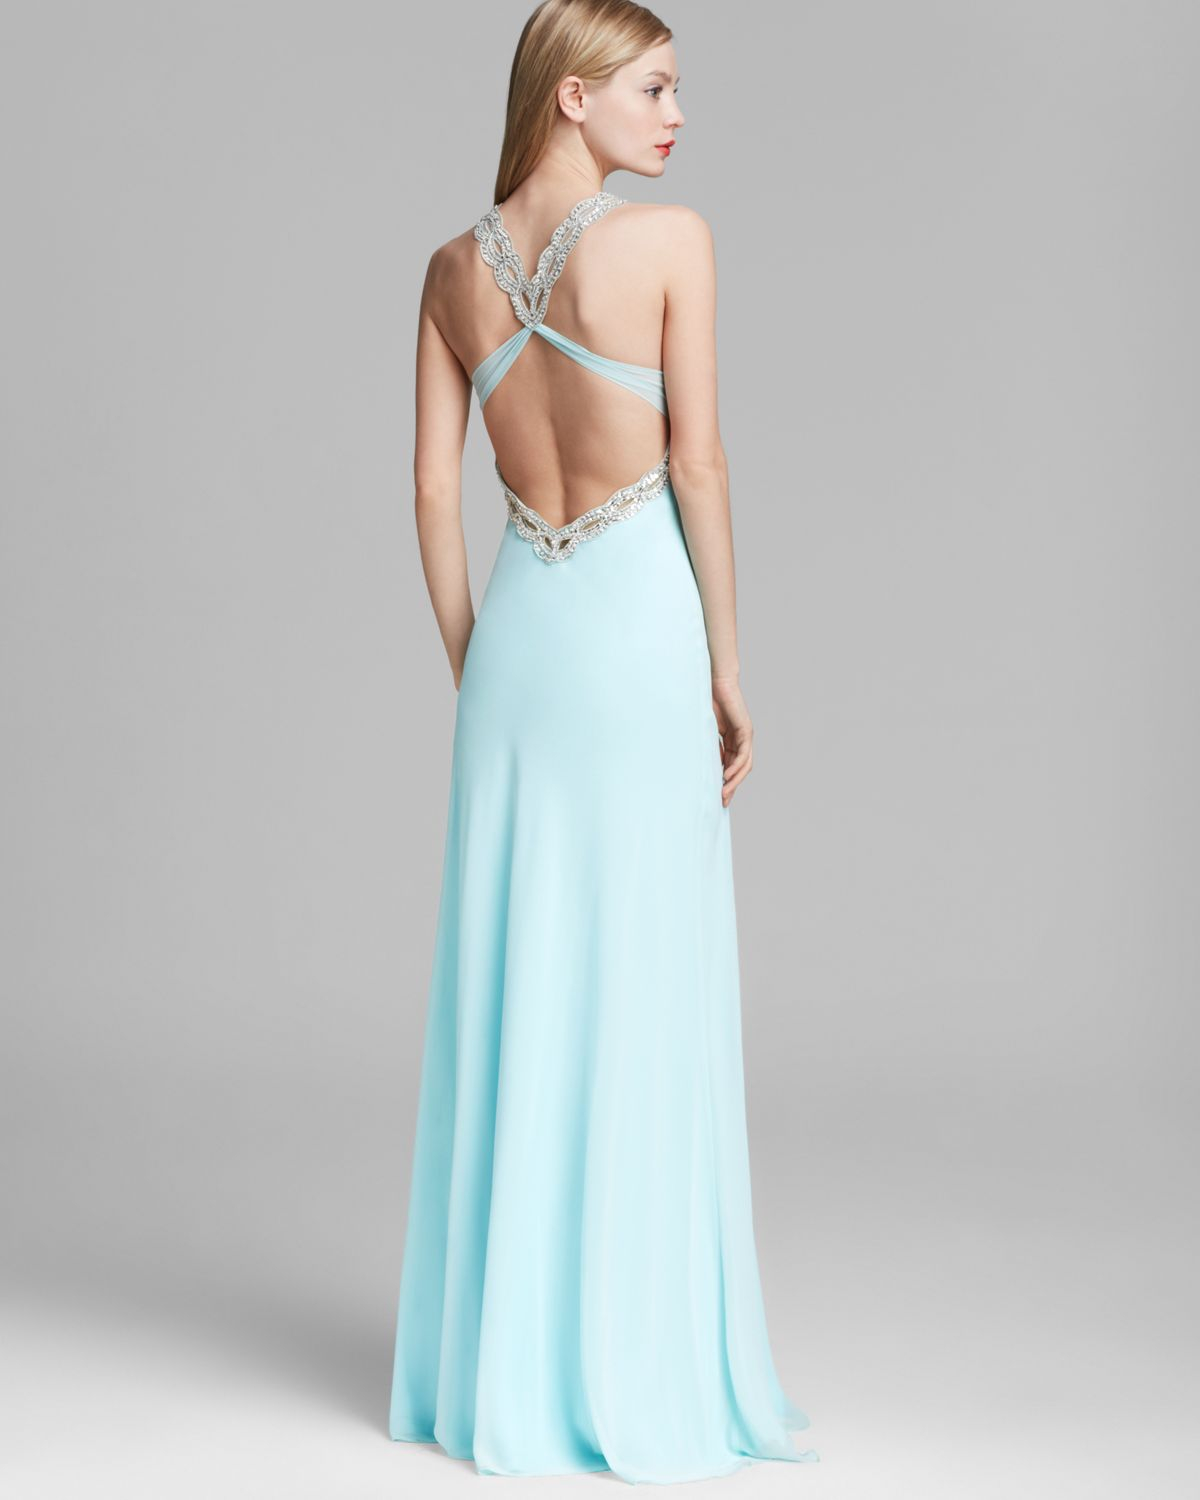 Lyst - Faviana Couture Gown - V Neck Beaded Open Back in Blue